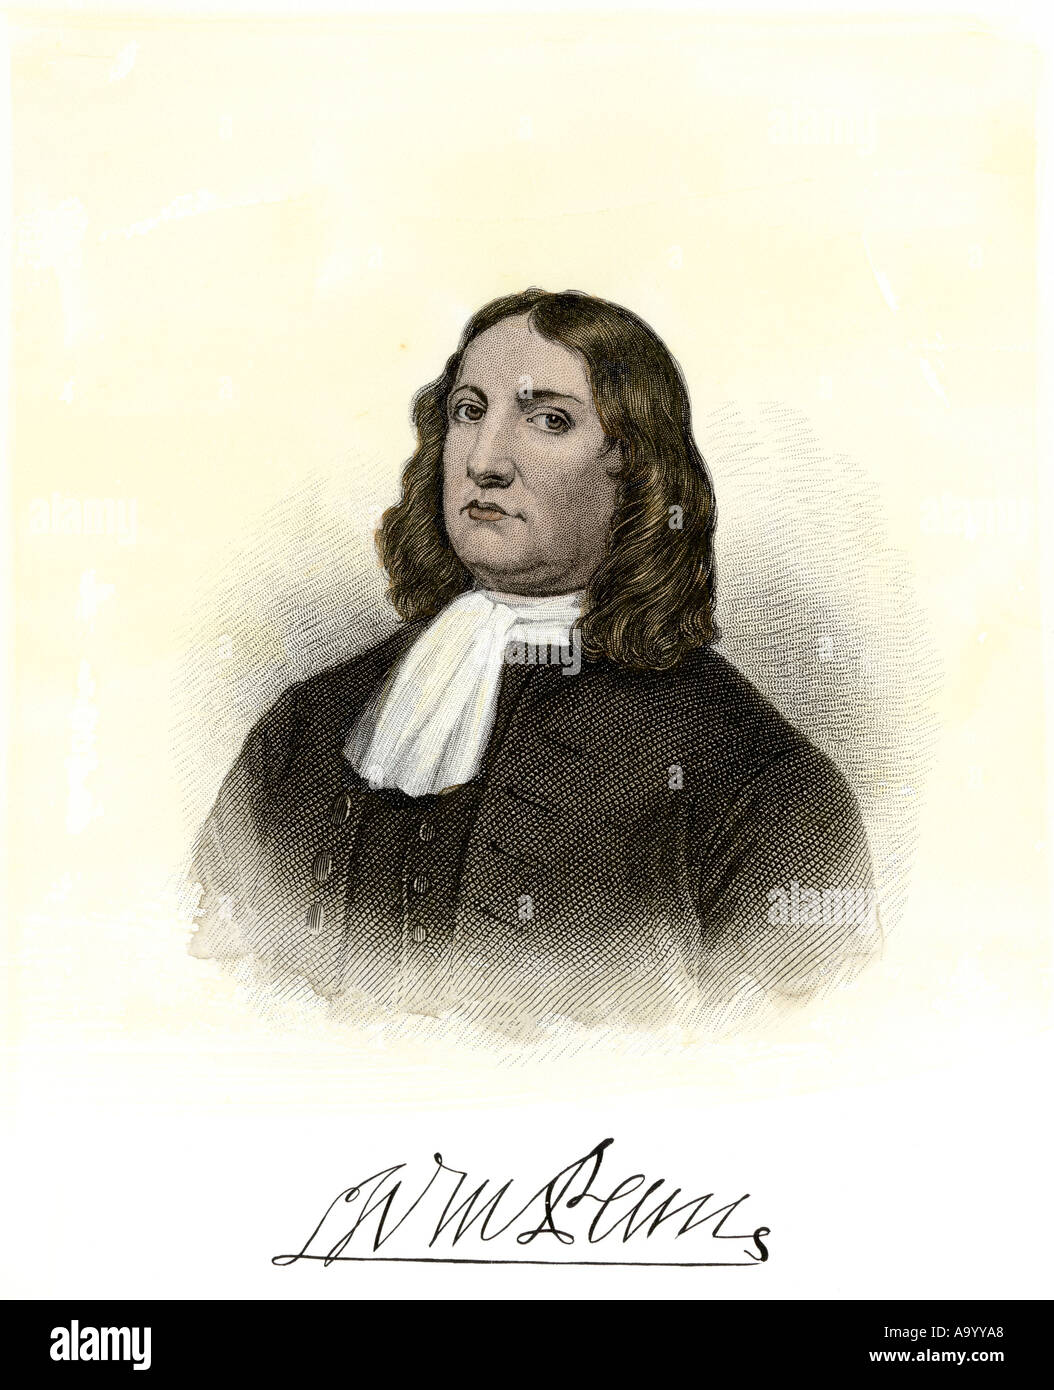 William Penn with autograph. Hand-colored steel engraving - Stock Image